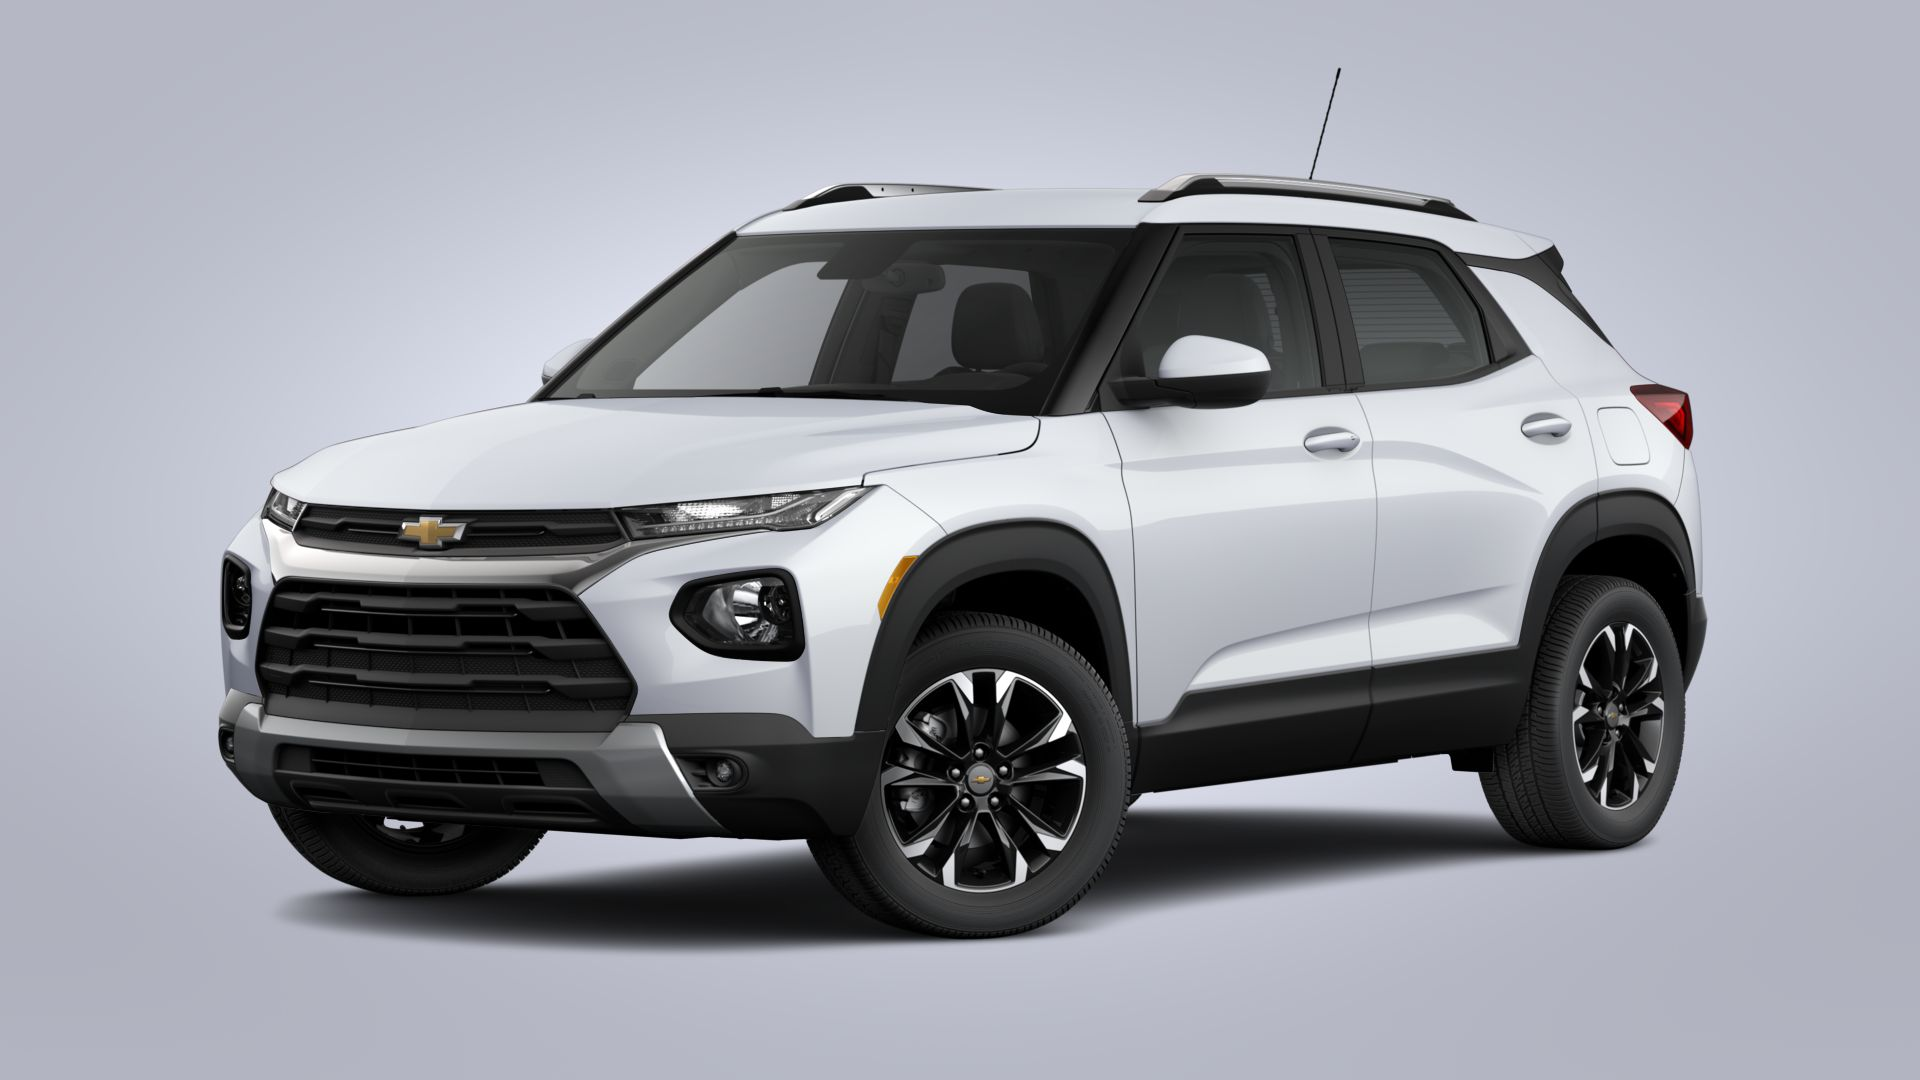 2021 Chevrolet Trailblazer LT